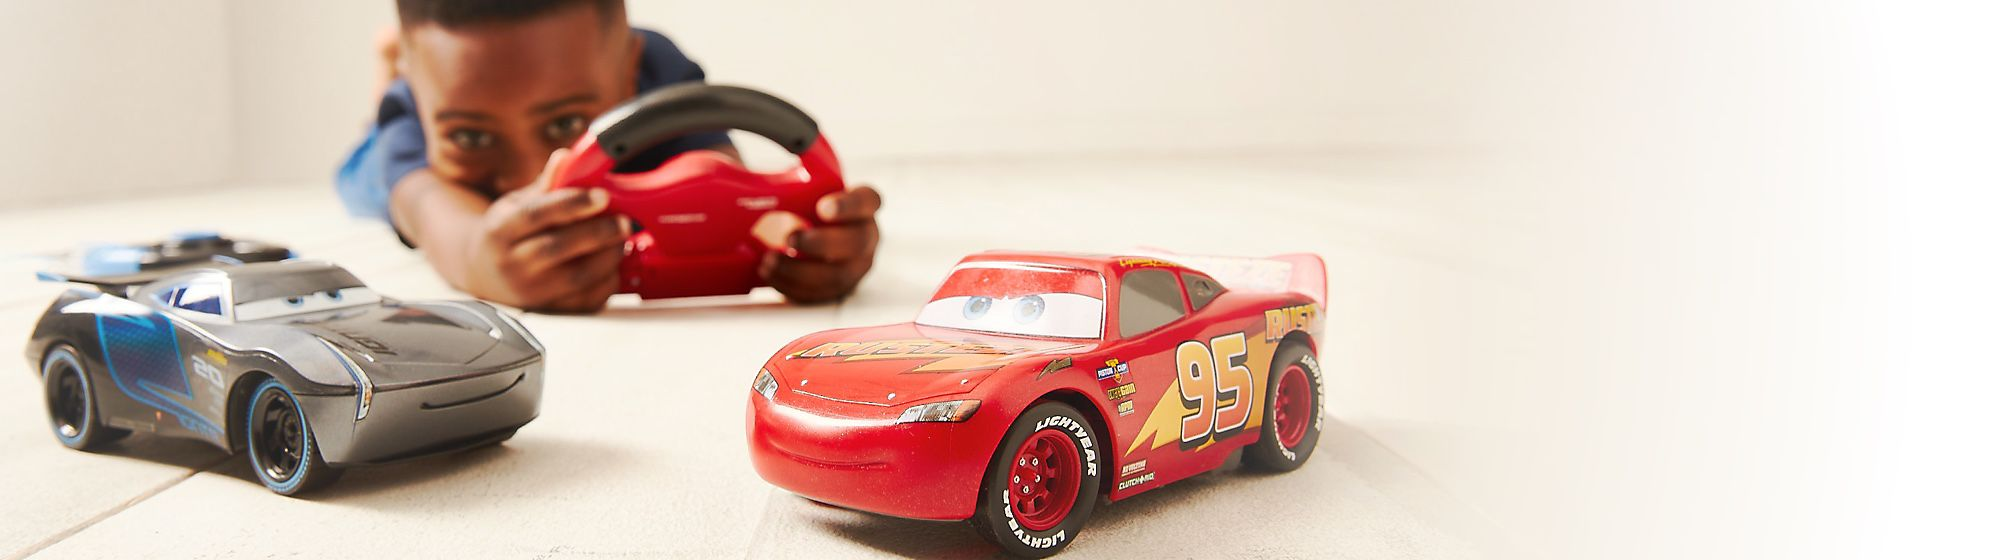 Vehicles & RC Toys Discover our wow-worthy vehicles and RC toys including Disney Pixar Cars,  Star Wars, Mickey Mouse and more